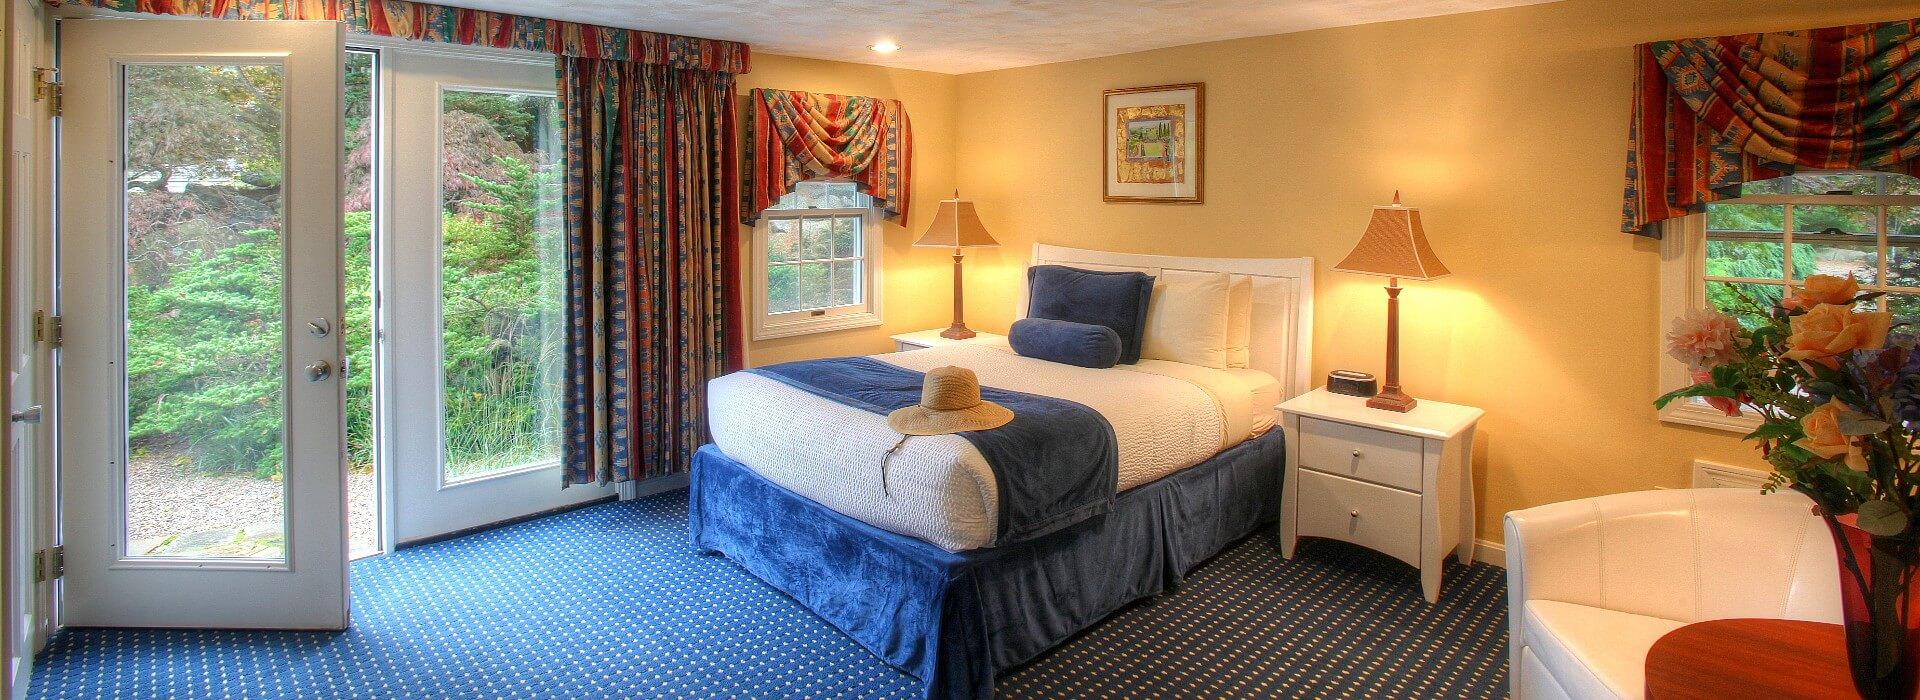 Spacious hotel room with queen bed, large french doors and sitting chair next to table with vase of flowers